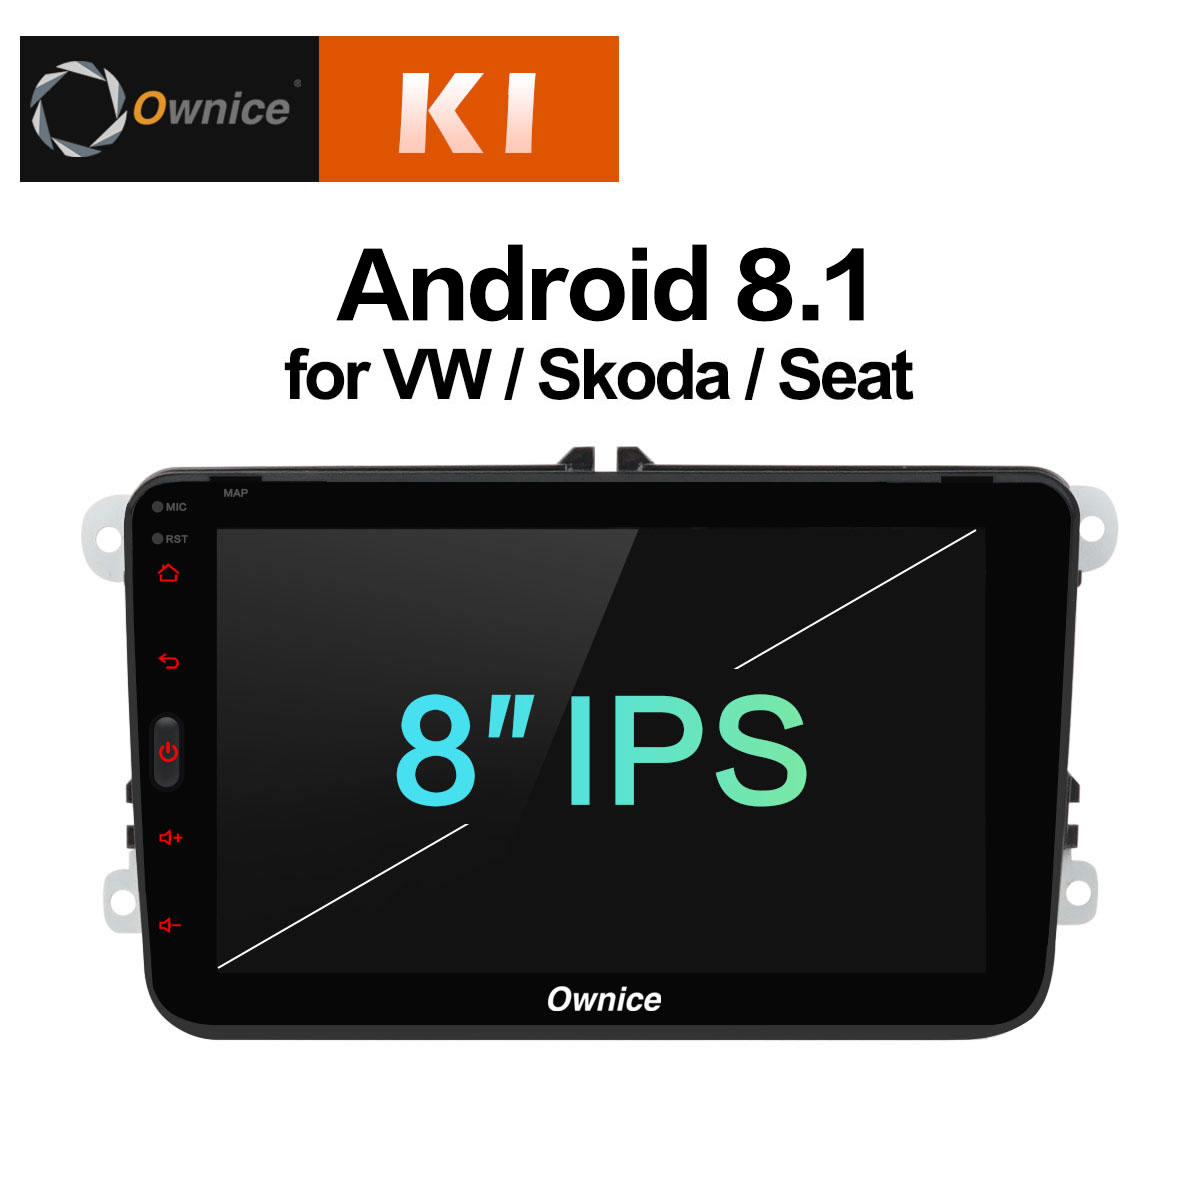 Ownice K1 Android 8.1 Car DVD GPS radio stereo player for Volkswagen VW golf 6 touran passat sharan Touran polo tiguan seat leon 7 inch android car dvd player radio gps stereo for volkswagen vw golf 6 touran passat b7 sharan touran polo tiguan seat leon